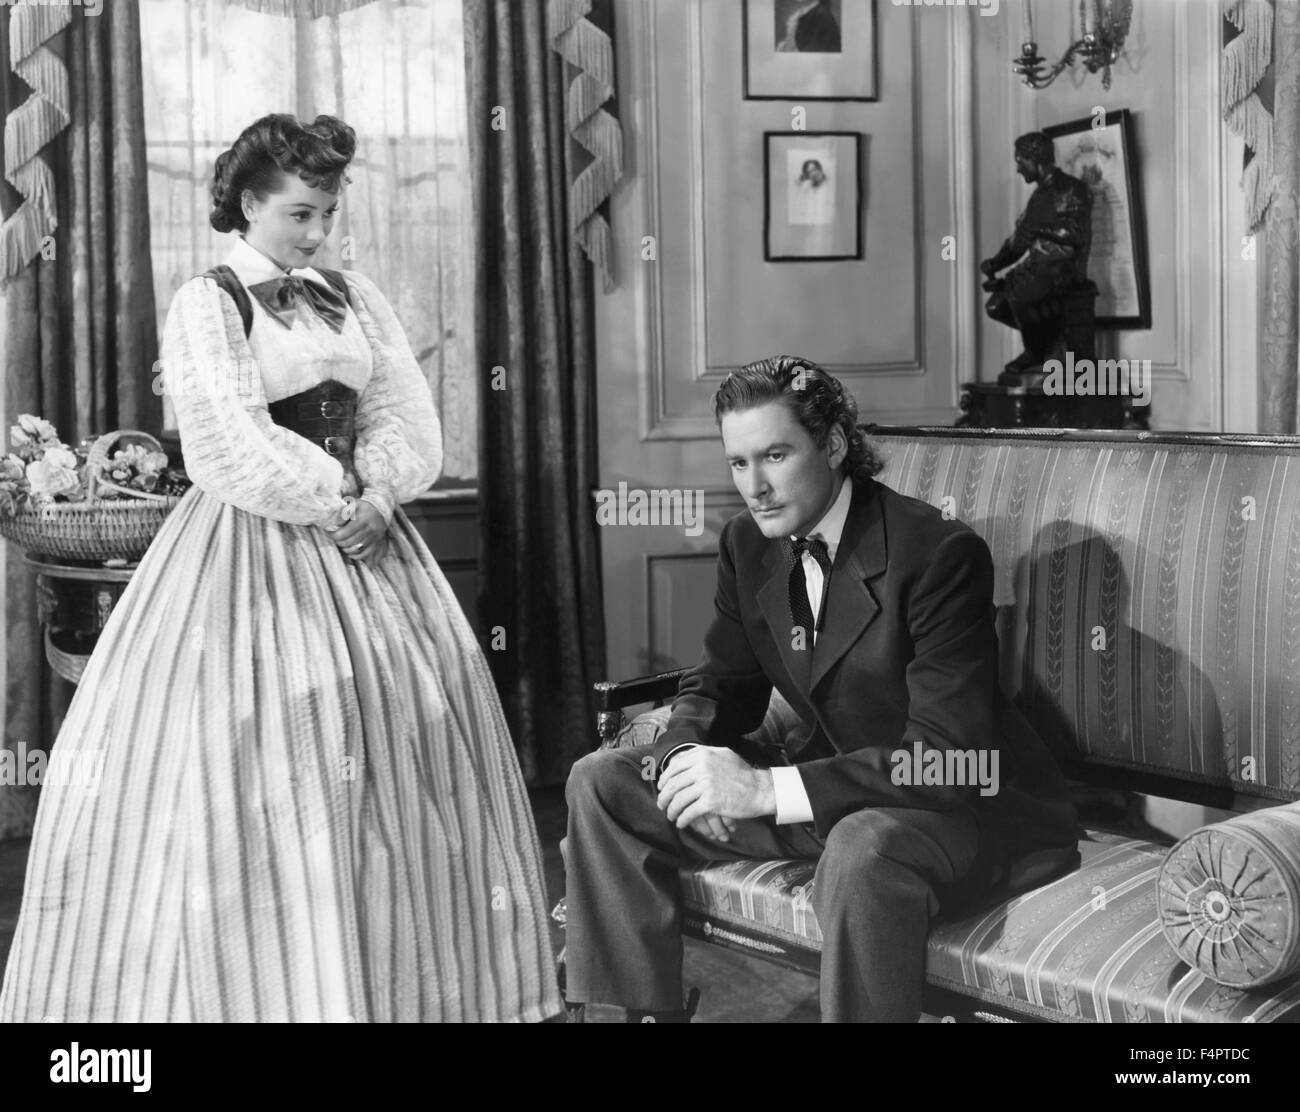 Olivia de Havilland and Errol flynn / They Died with Their Boots On / 1941 directed by Raoul Walsh  [Warner Bros. - Stock Image